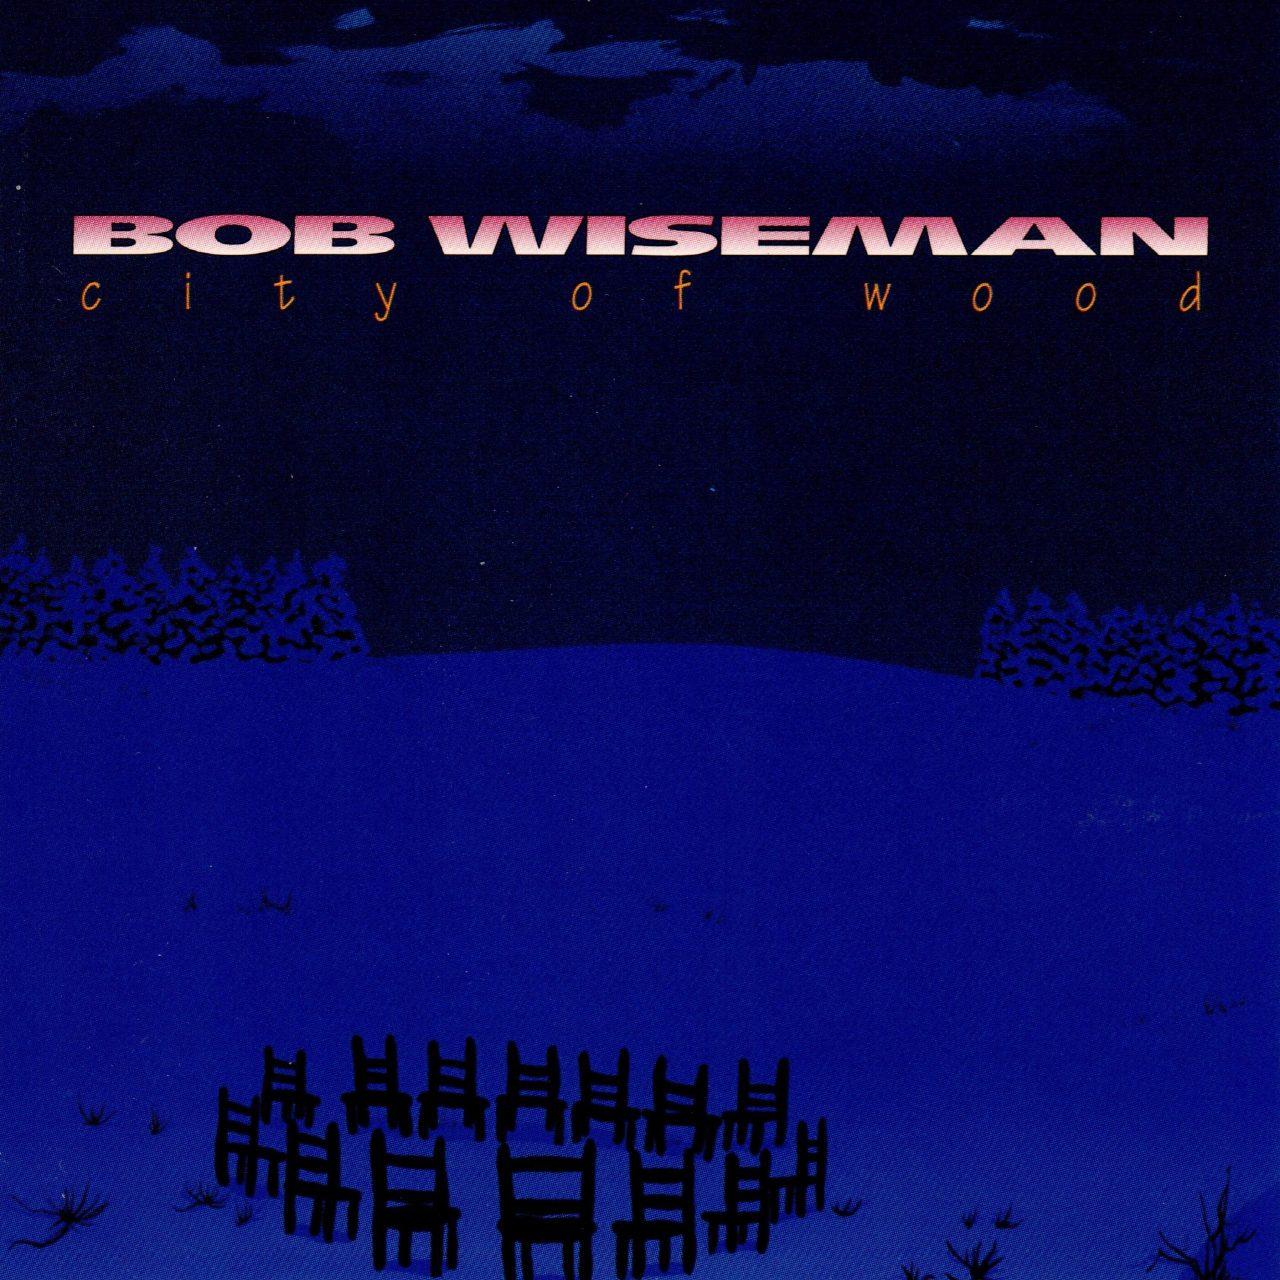 Bob Wiseman, City of Wood album cover